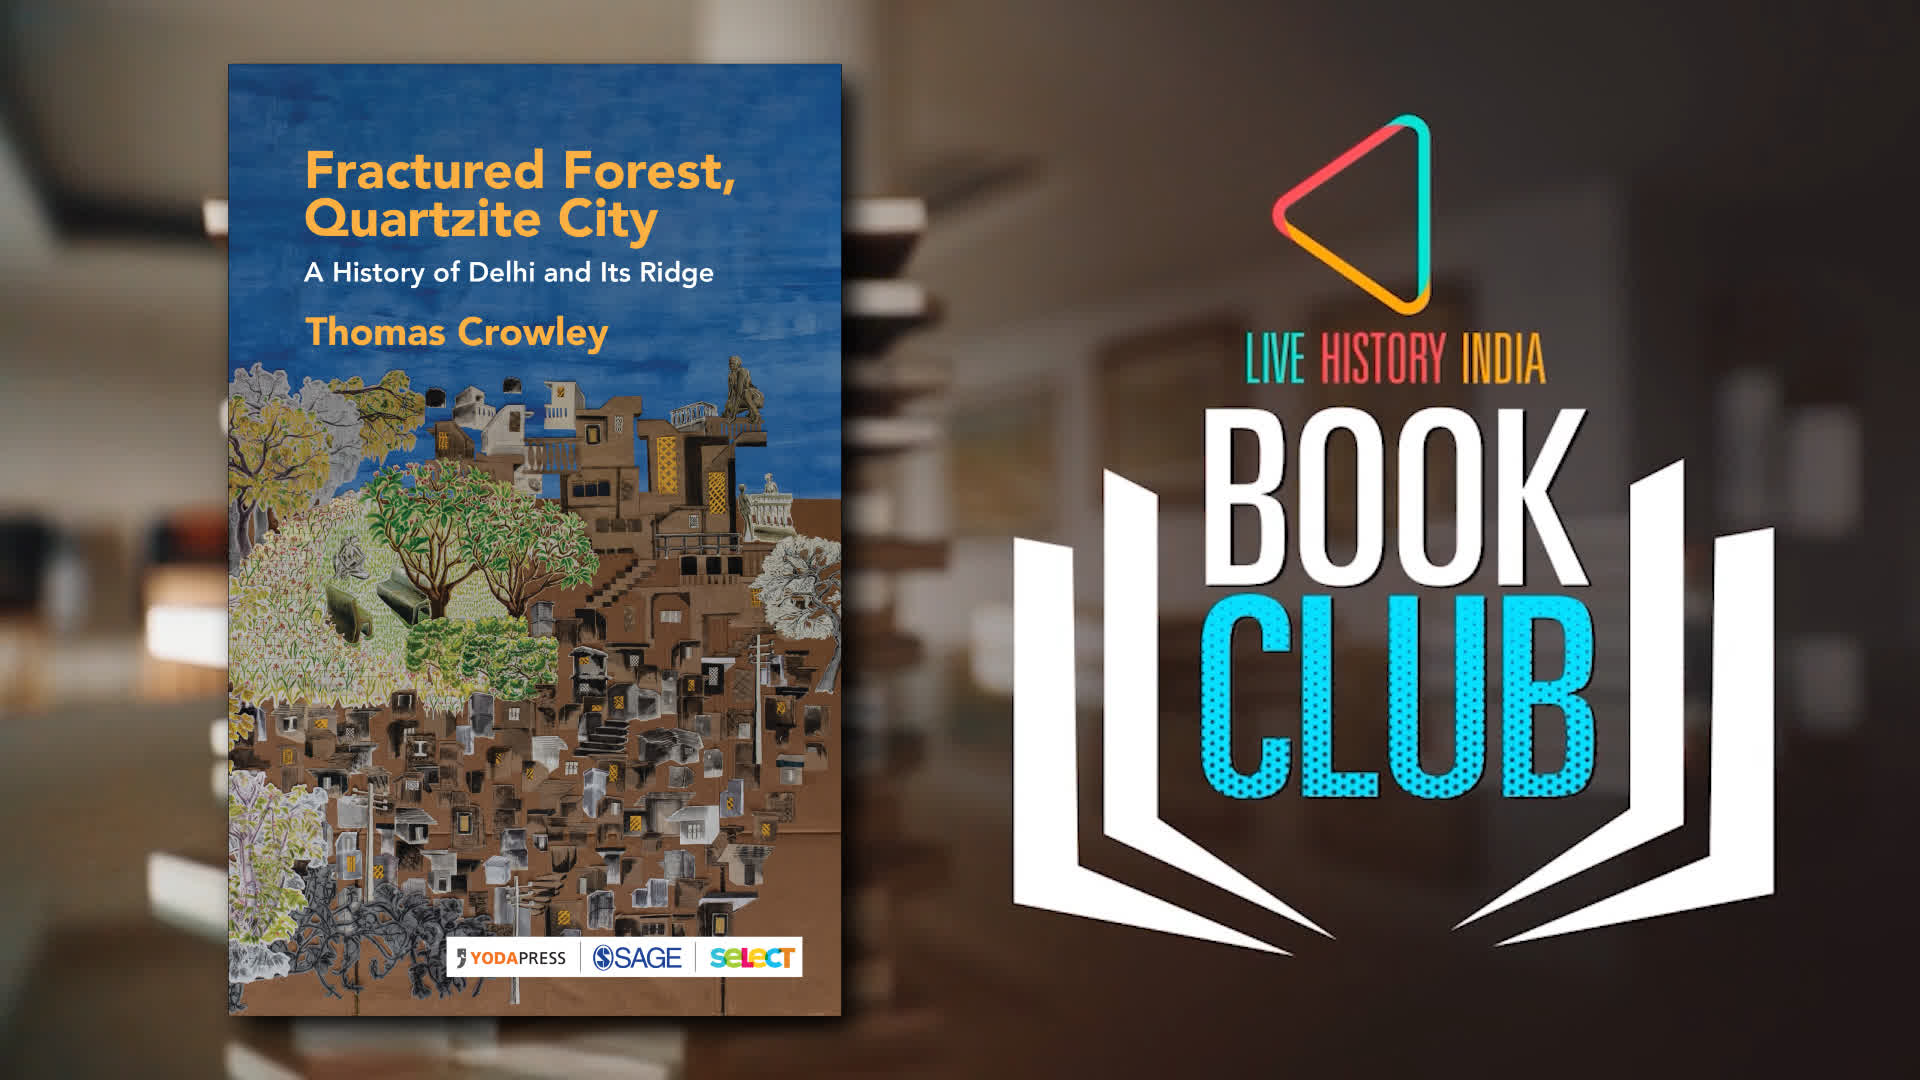 Thomas Crowley on 'Fractured Forest, Quartzite City'